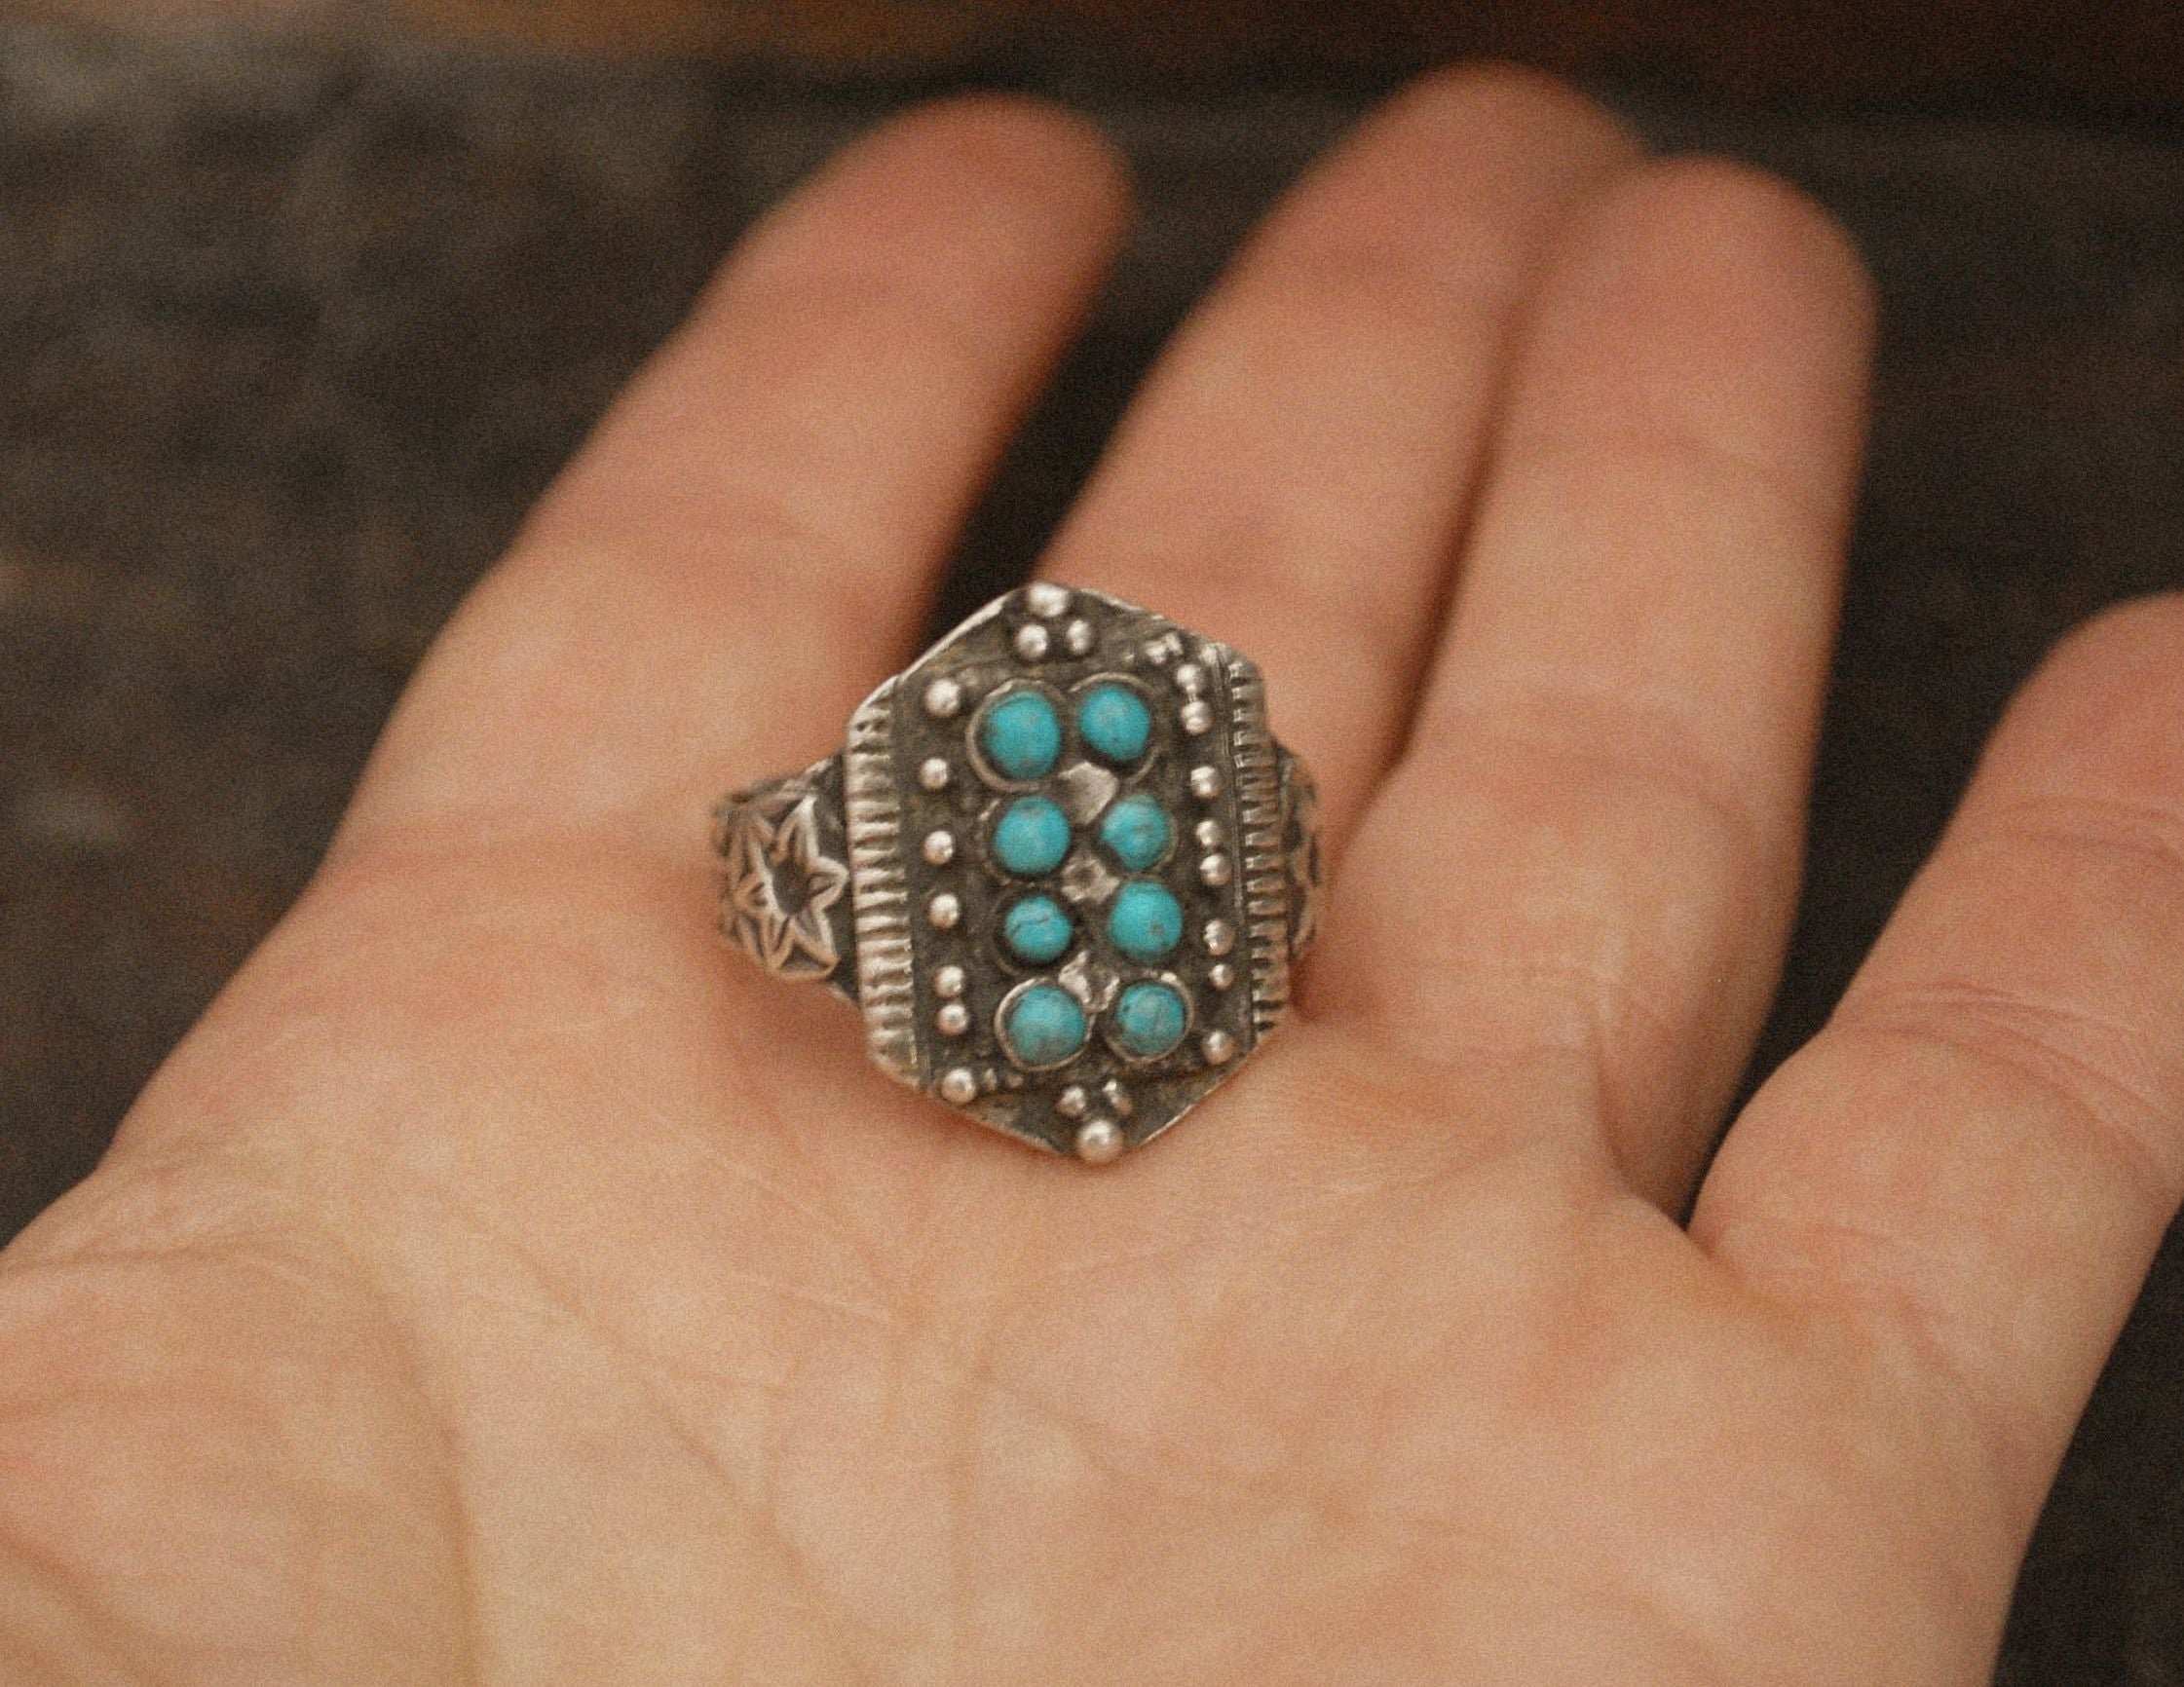 Antique Afghani Silver Ring with Turquoises - Size 8.5